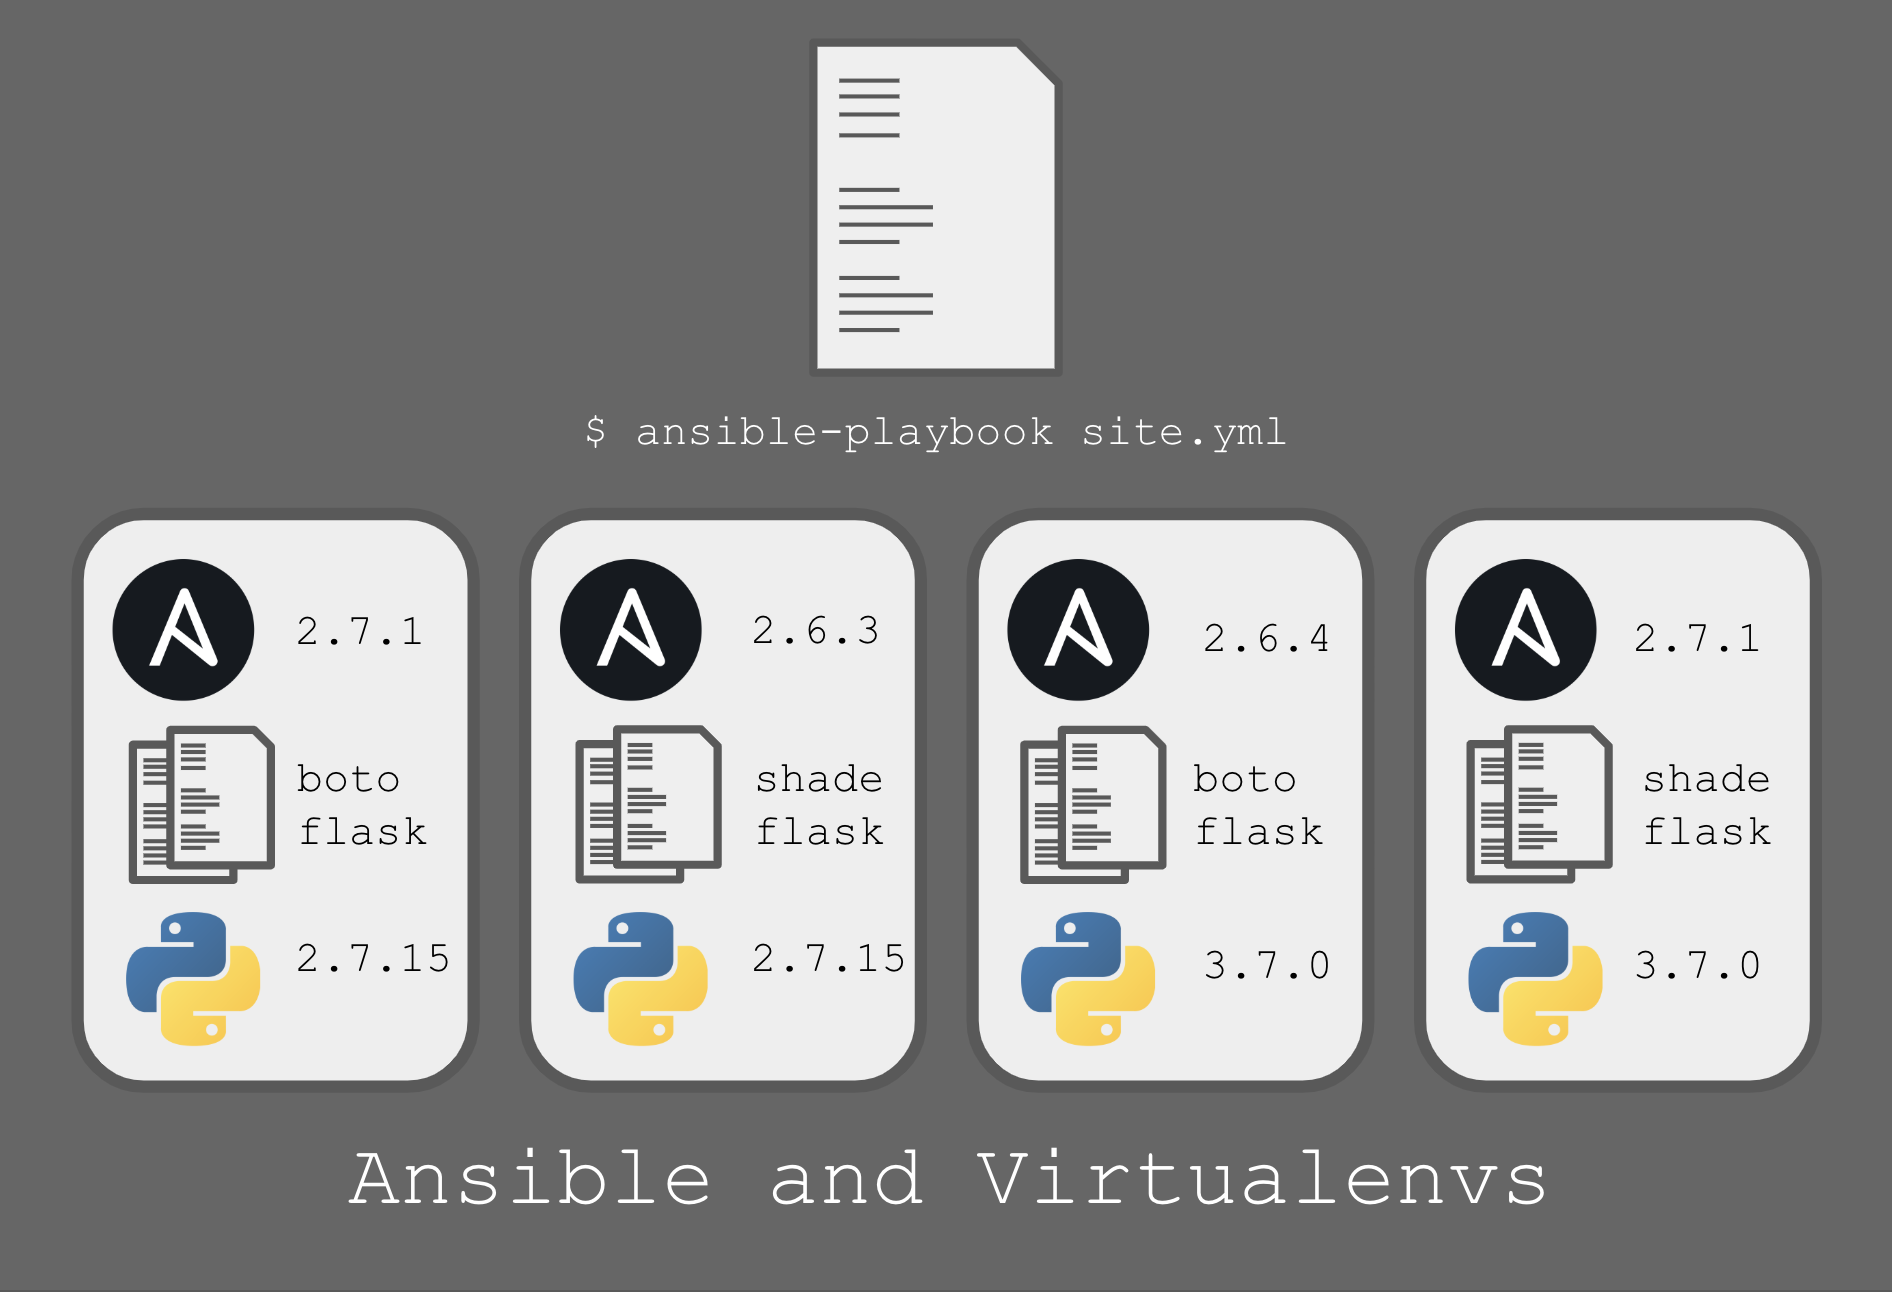 Ansible and Virtualenvs Part 1 - Why